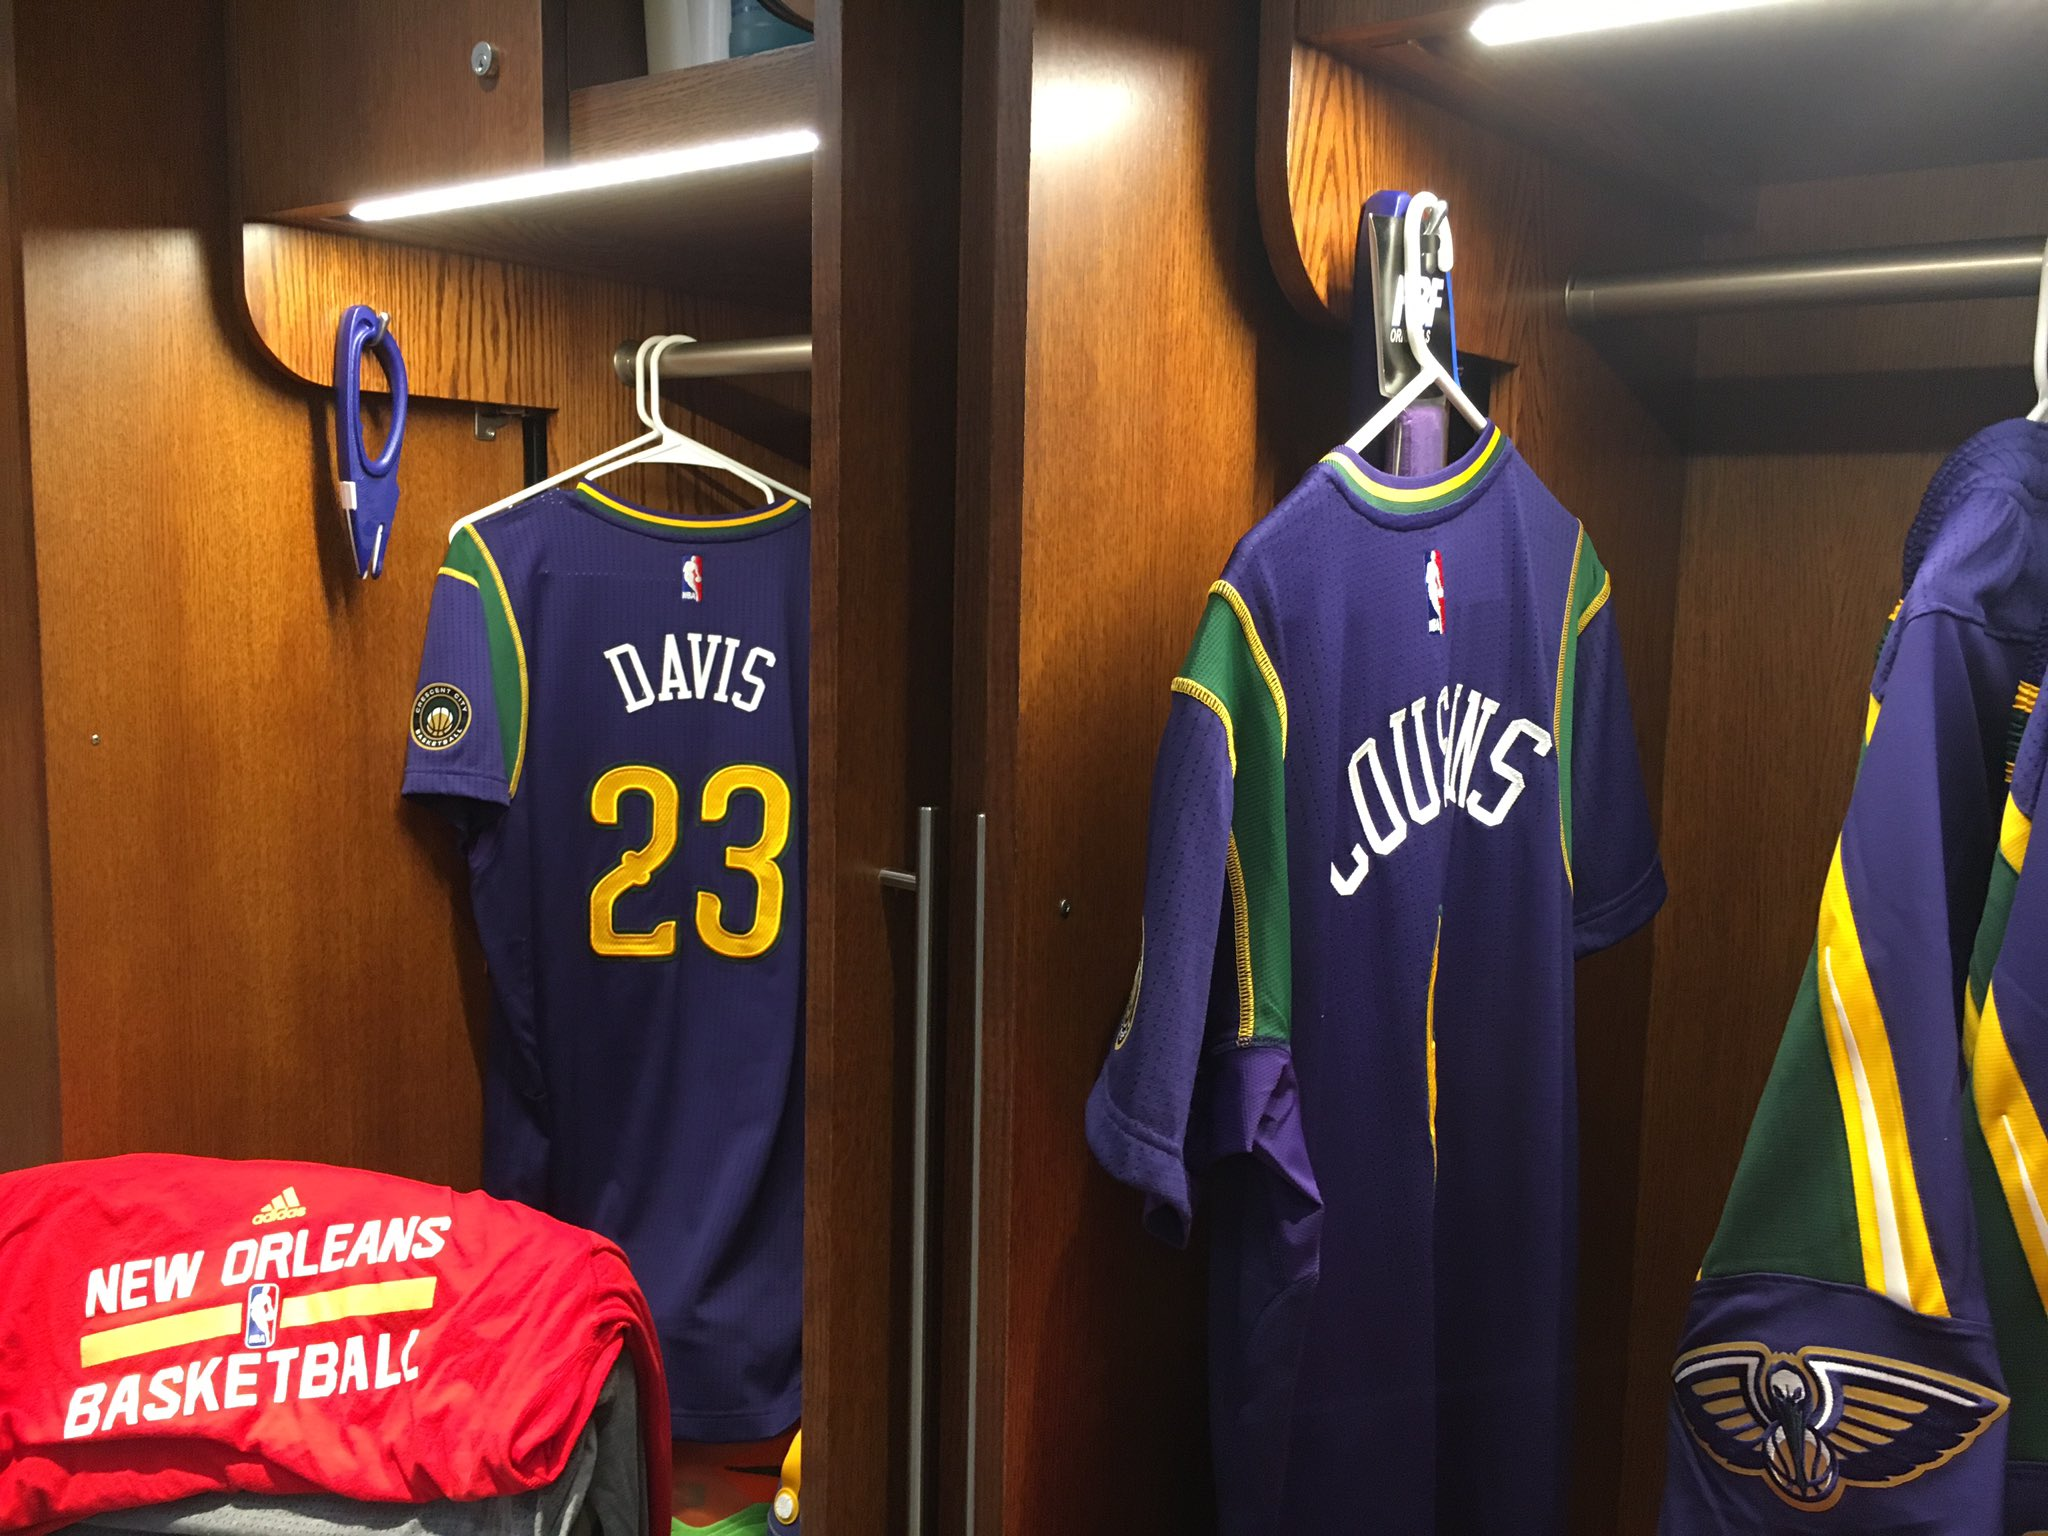 New Orleans Pelicans On Twitter Mardi Gras Madness Night